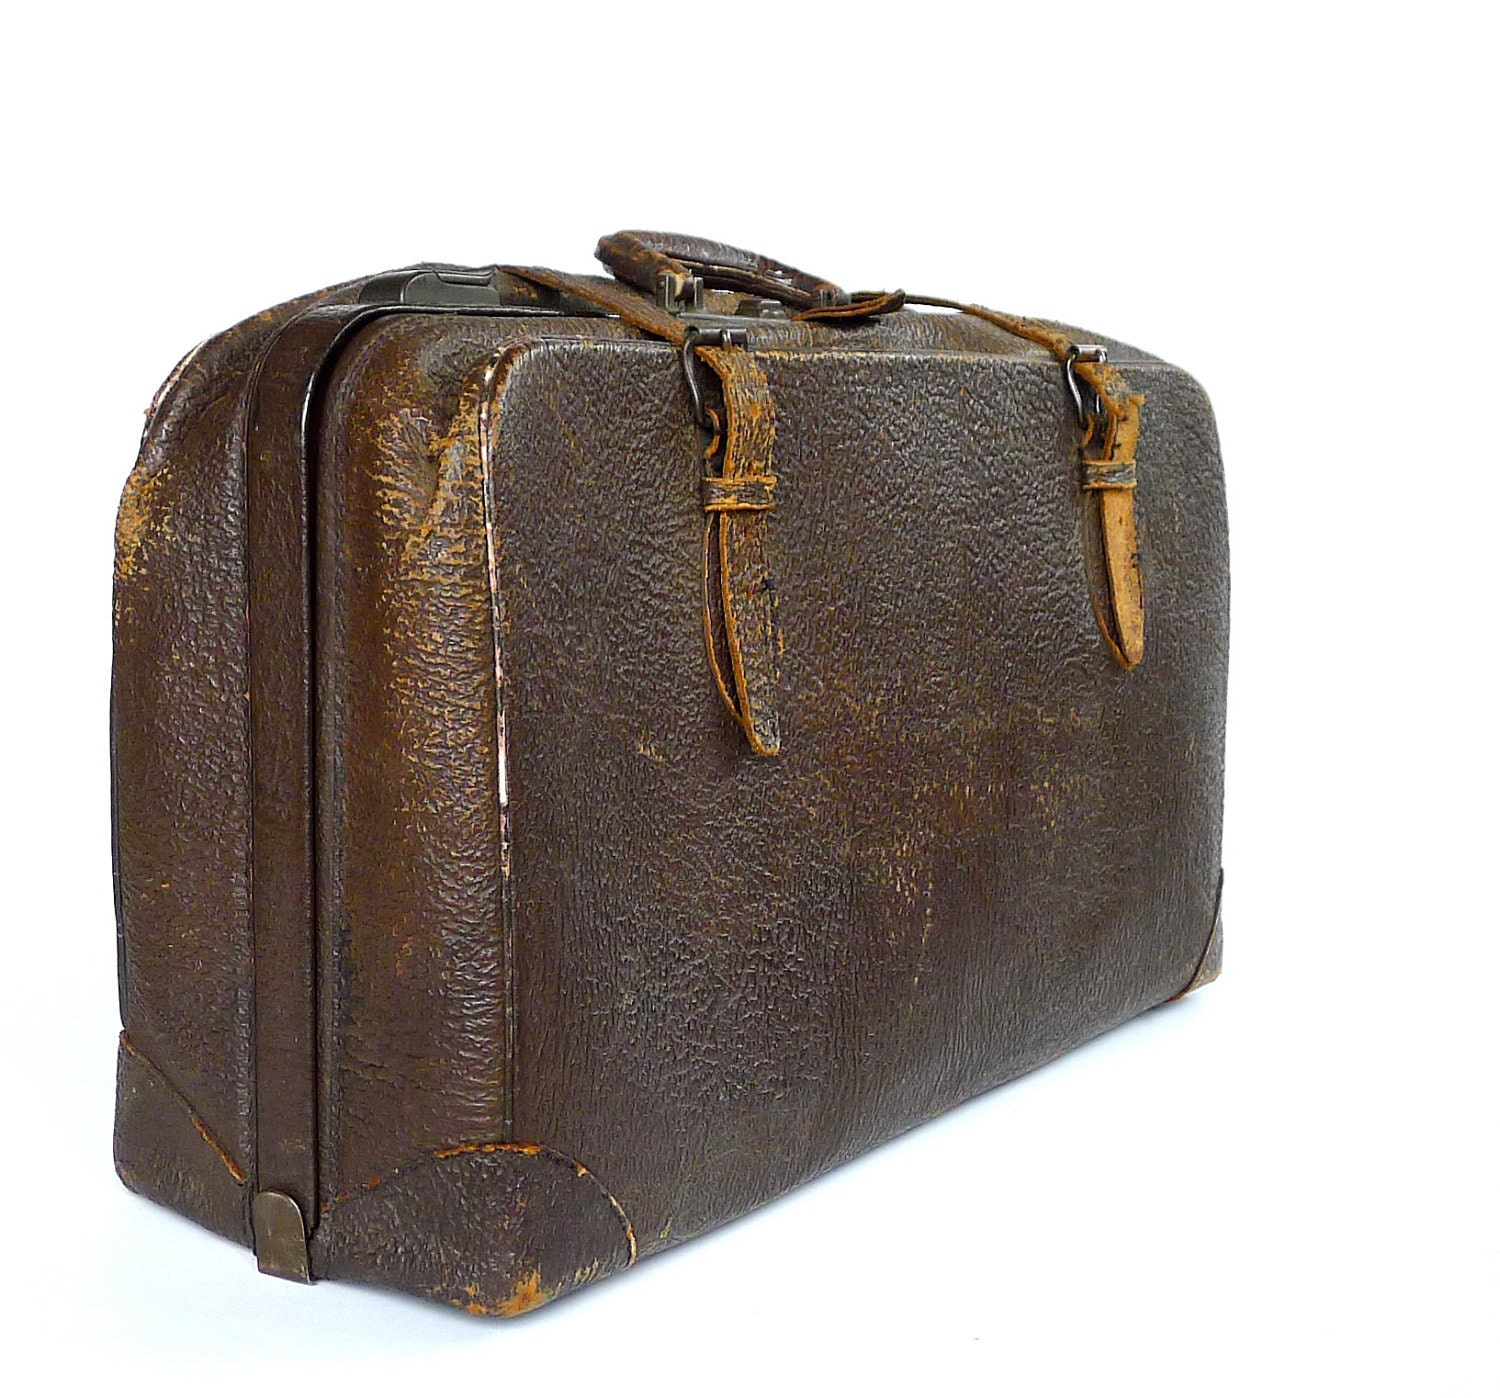 1930s antique cowhide leather suitcase - Vintage suitcase ...